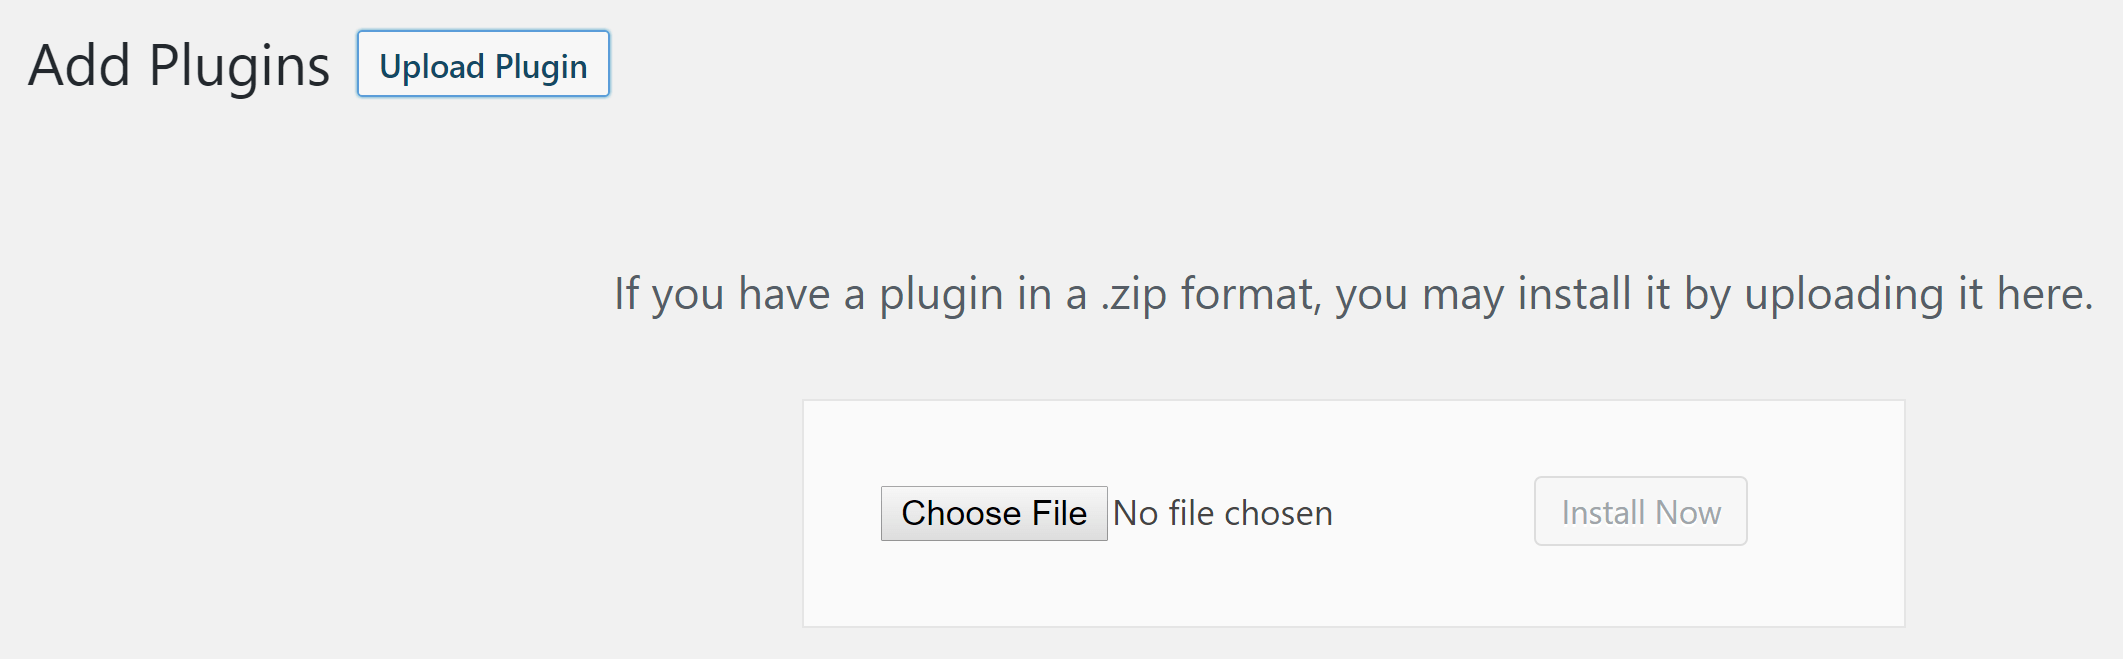 The option to upload a plugin to WordPress.